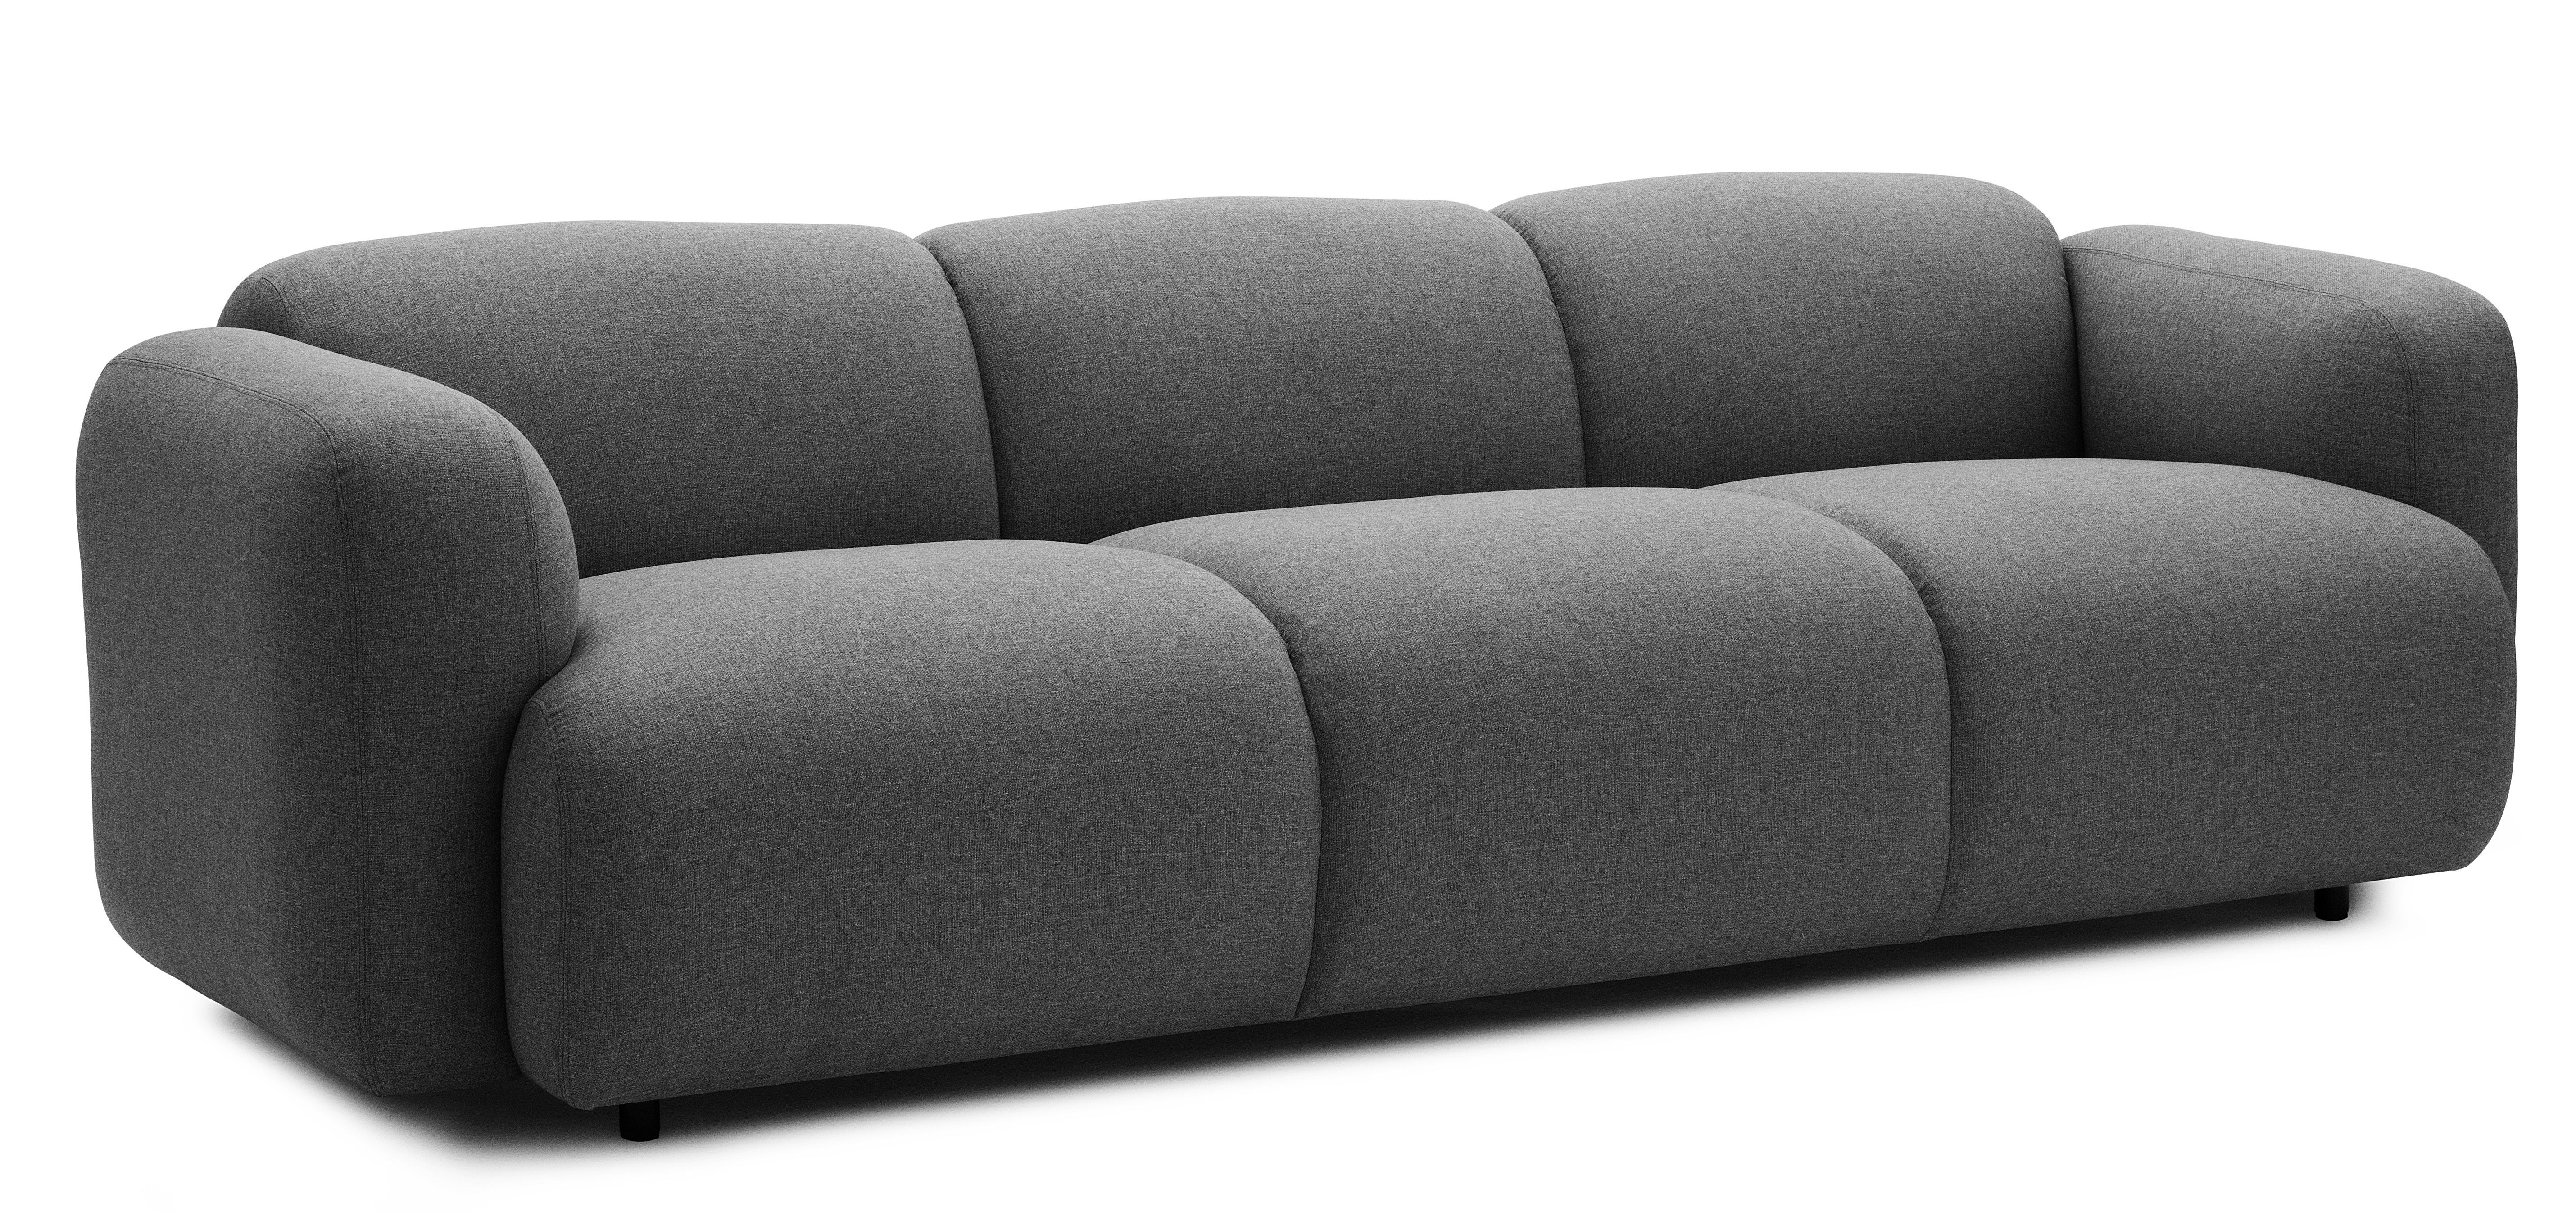 swell straight sofa grey by normann copenhagen. Black Bedroom Furniture Sets. Home Design Ideas